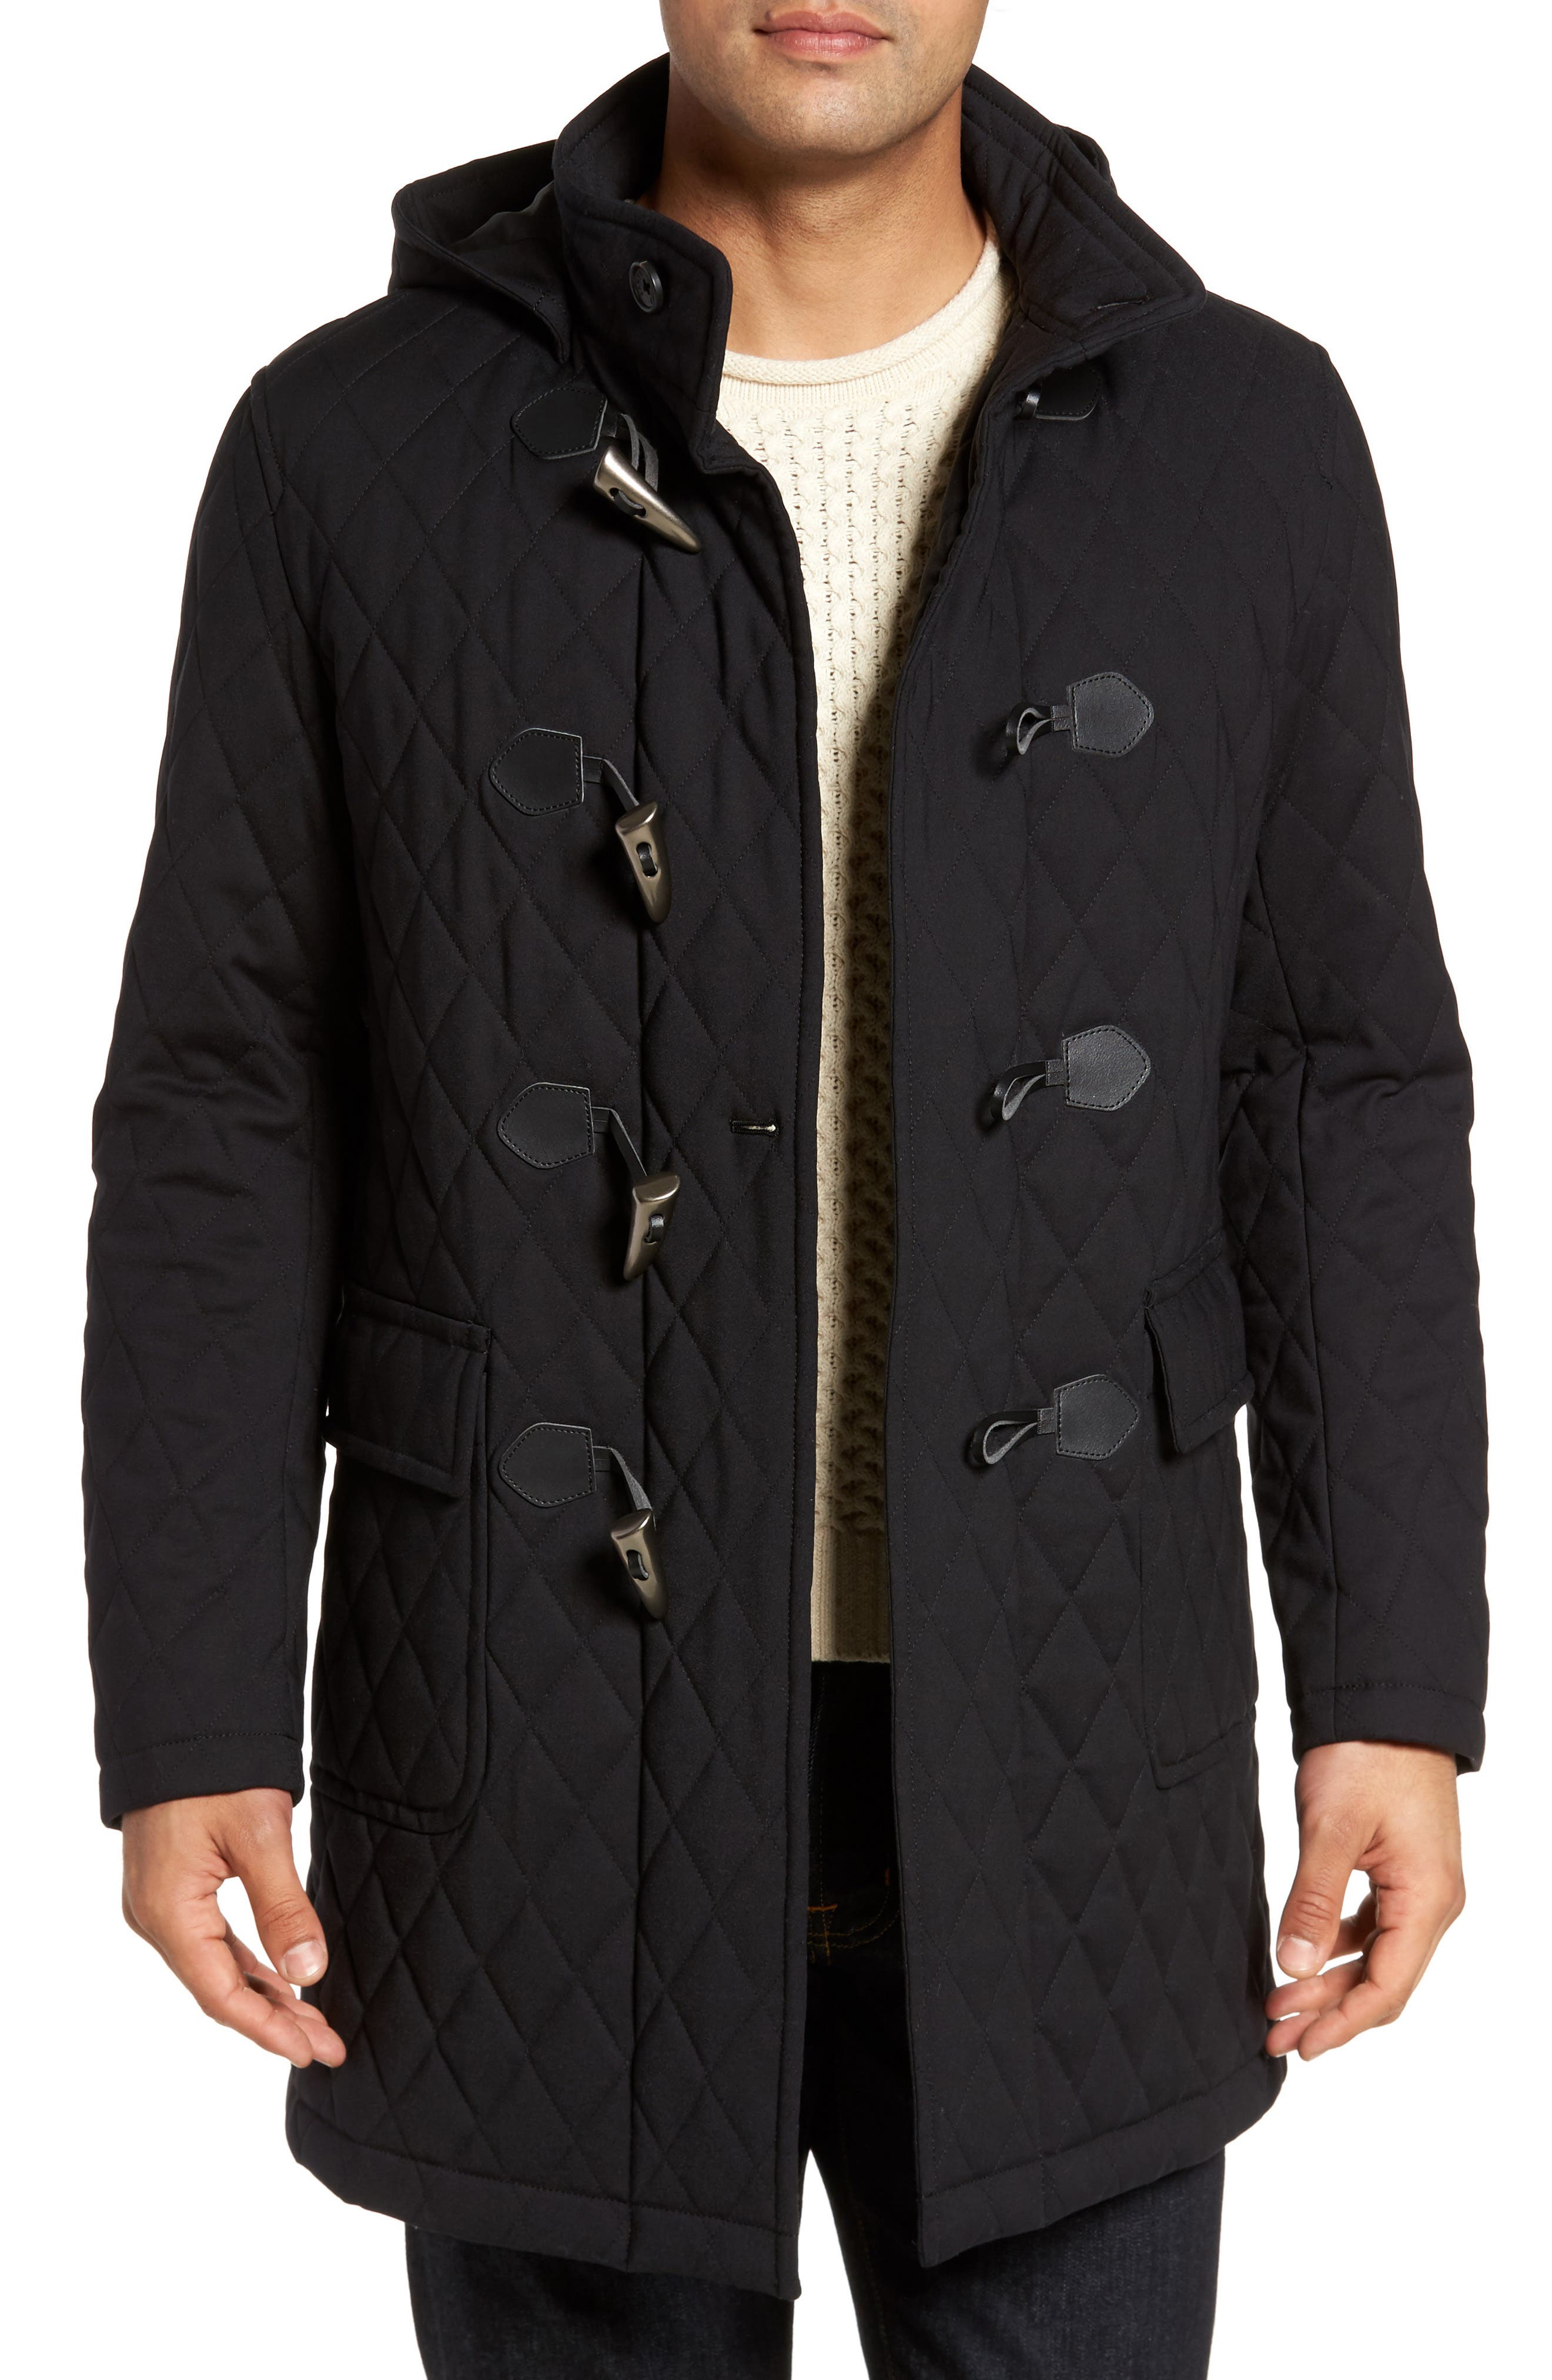 Francisco Quilted Duffle Coat,                             Main thumbnail 1, color,                             009